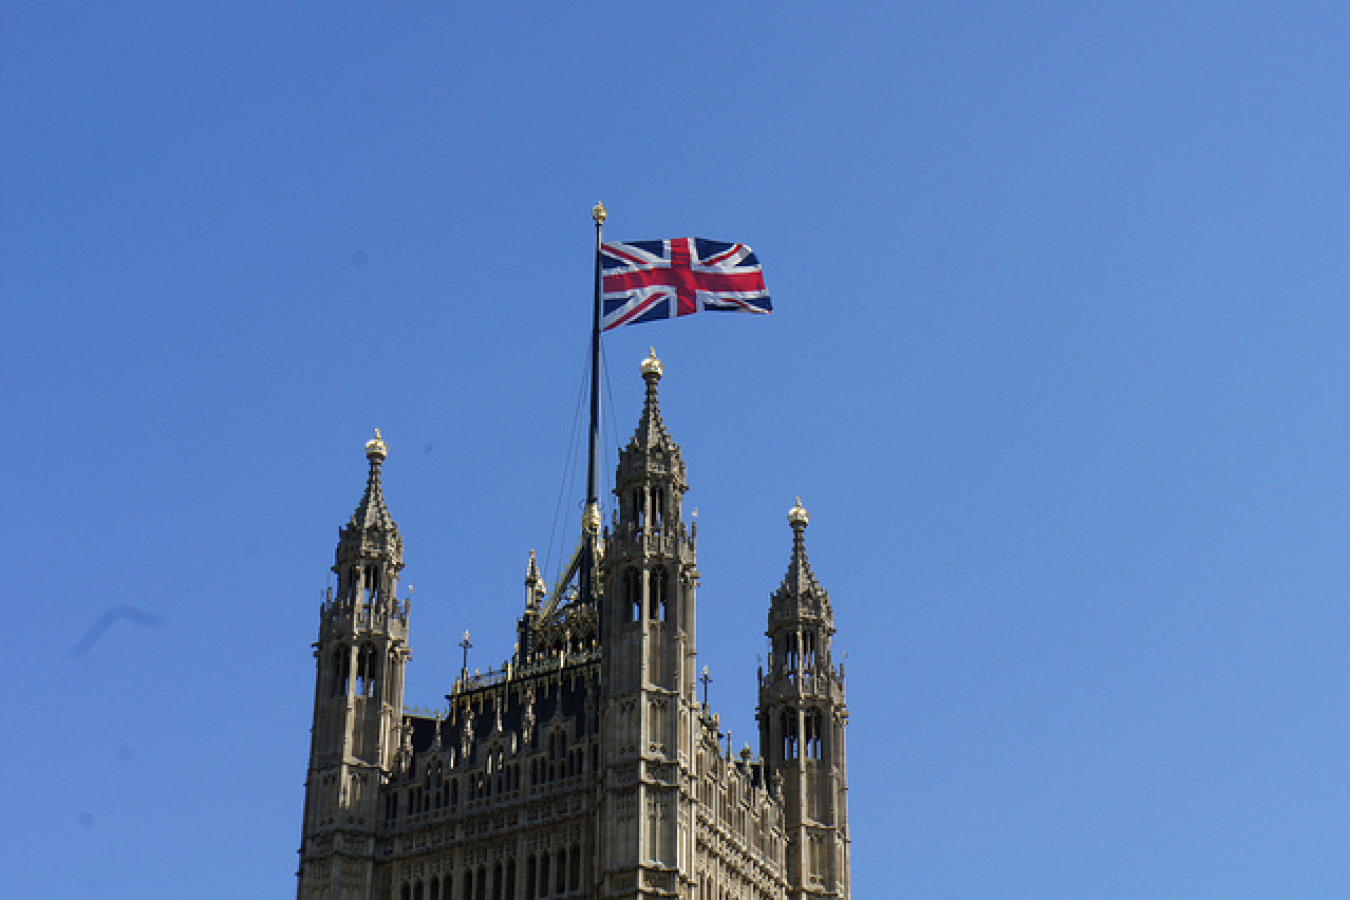 The Union Jack flag on Westminster Houses of Parliament 262